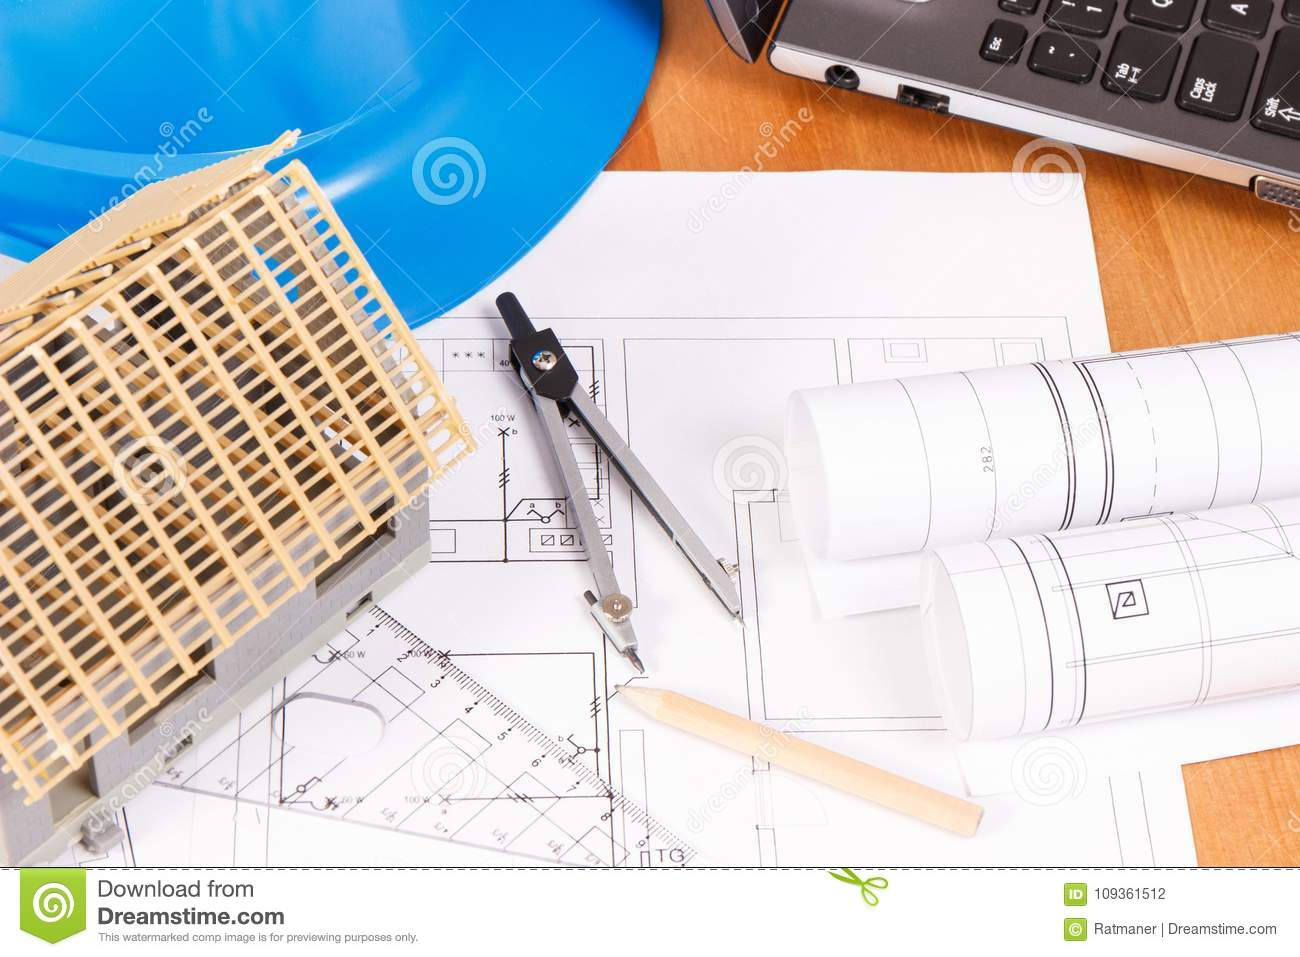 Electrical Diagrams Accessories For Engineer Jobs And House Under Diagram Building Construction On Desk Home